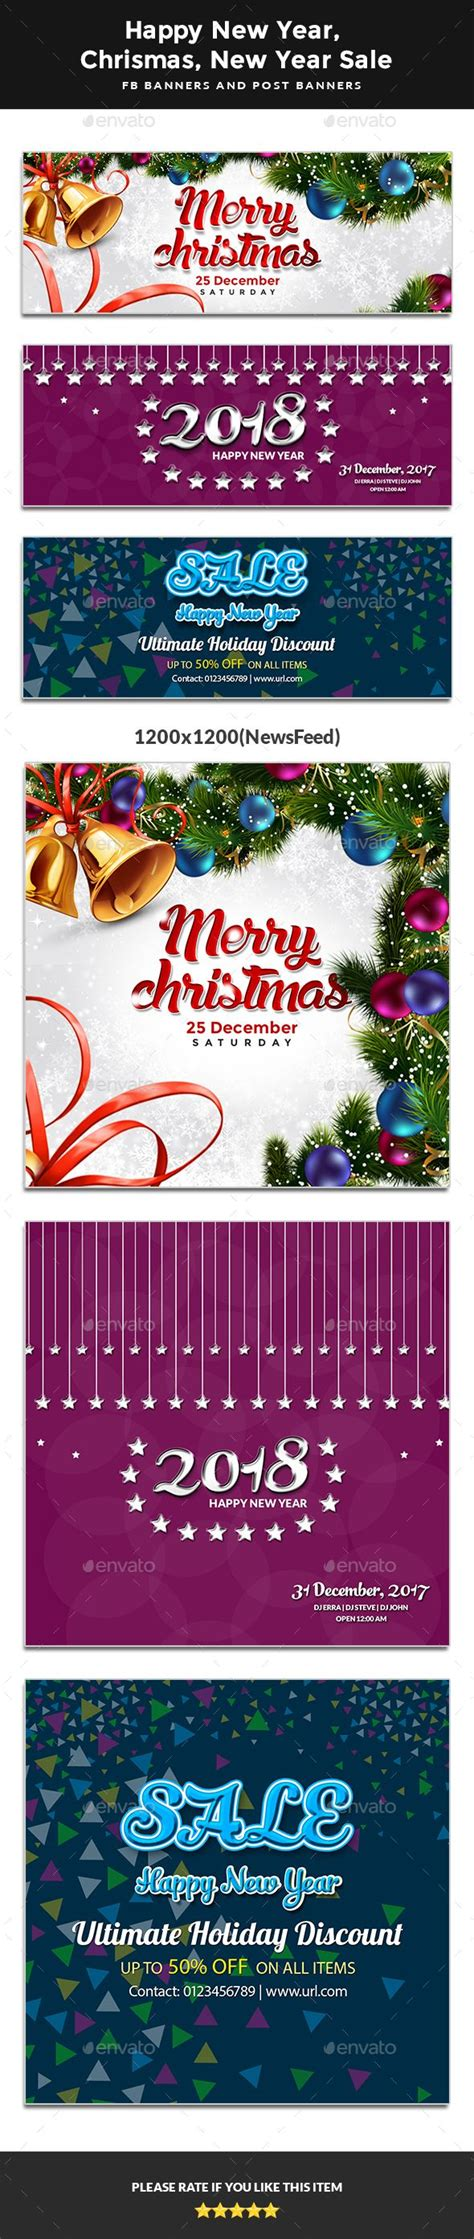 happy  year happy christmas  year sale fb covers post banners facebook